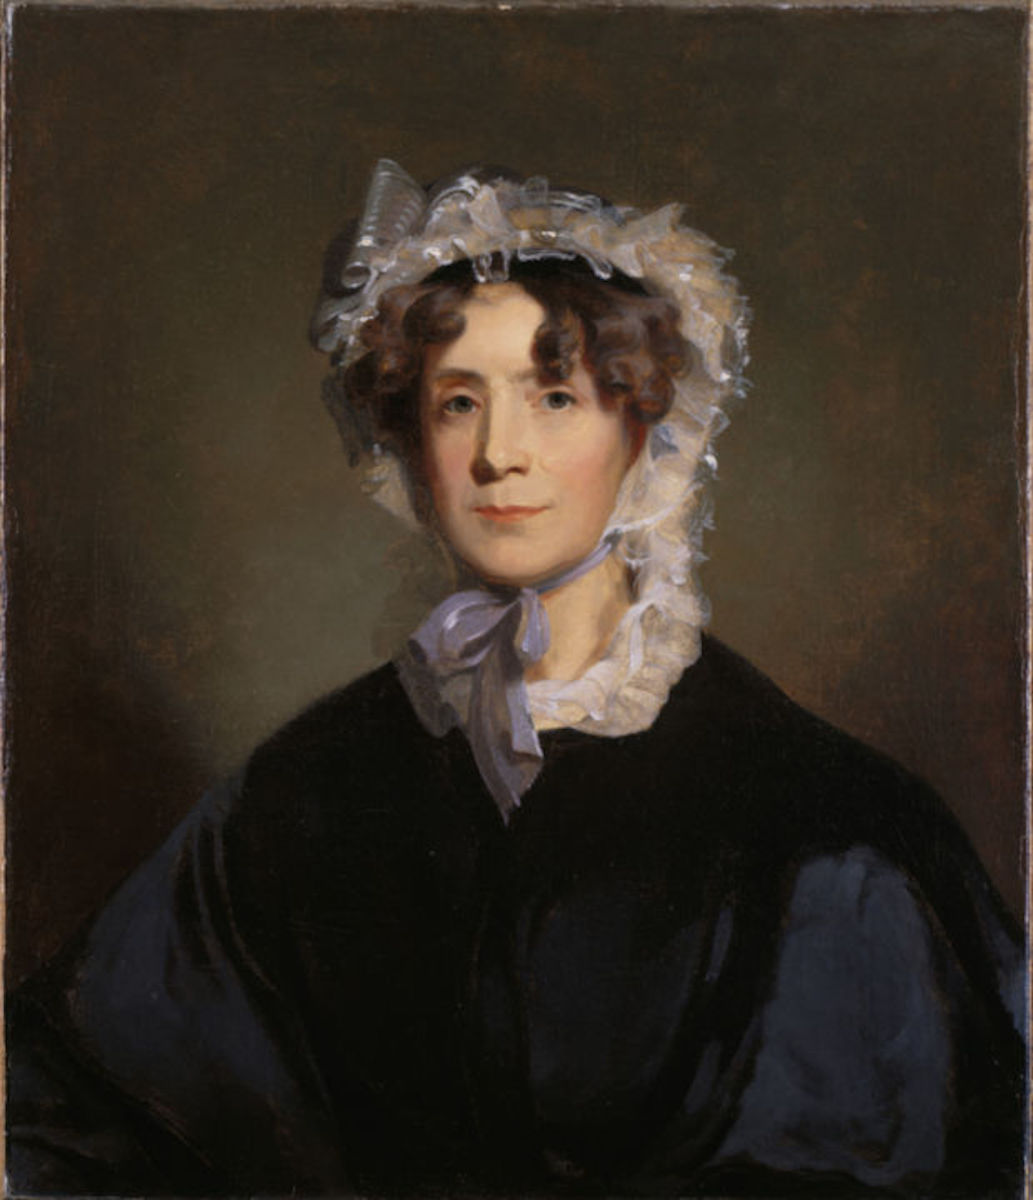 Older daughter of President Thomas Jefferson and First Lady Martha Jefferson